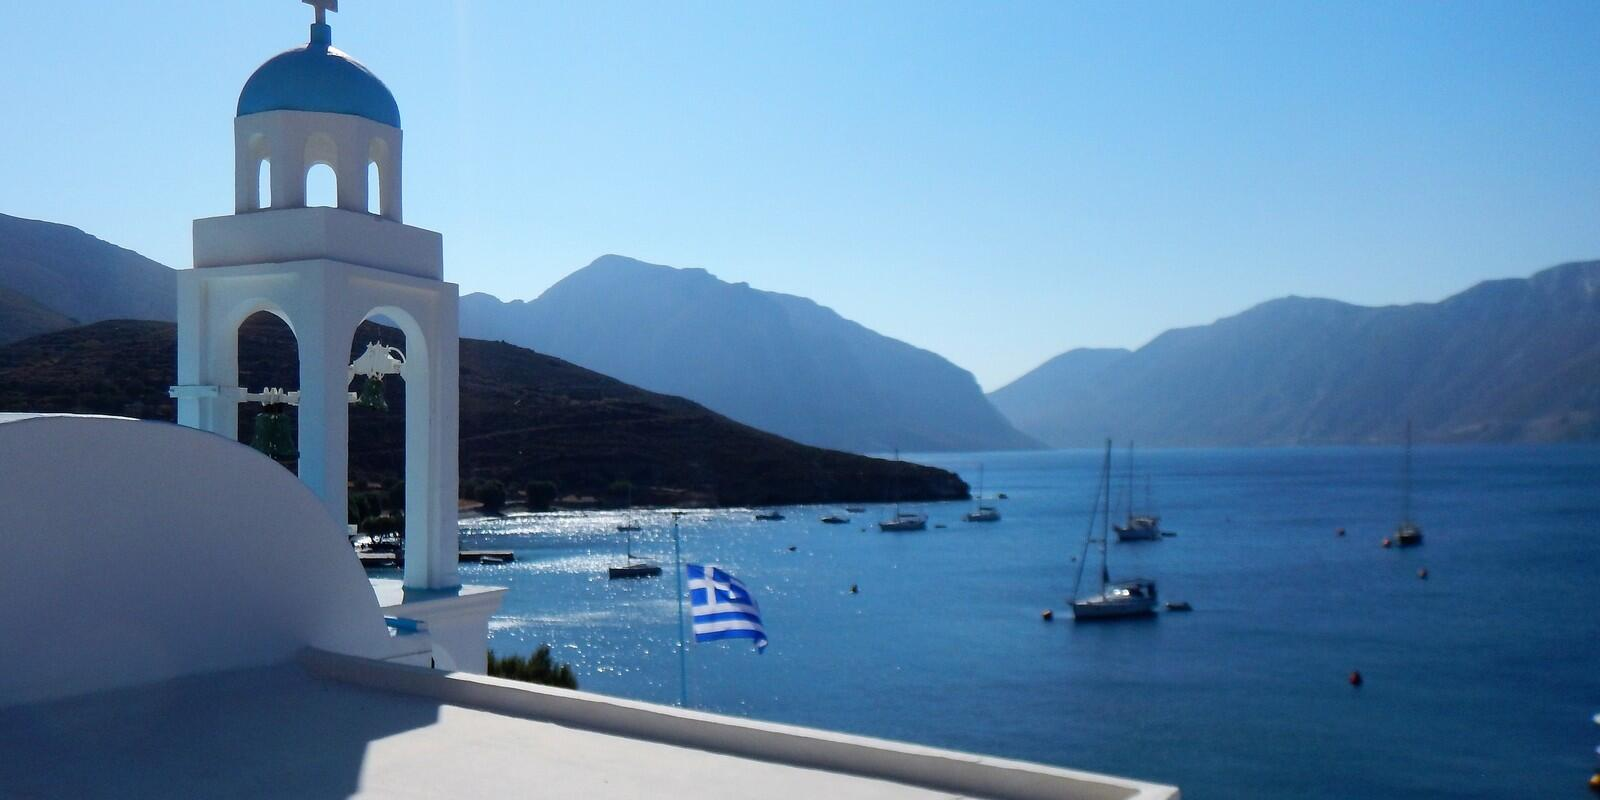 A unique holiday: Rhodes, Khalki, Alimia, Symi. The most beautiful bays in the Dodecanese